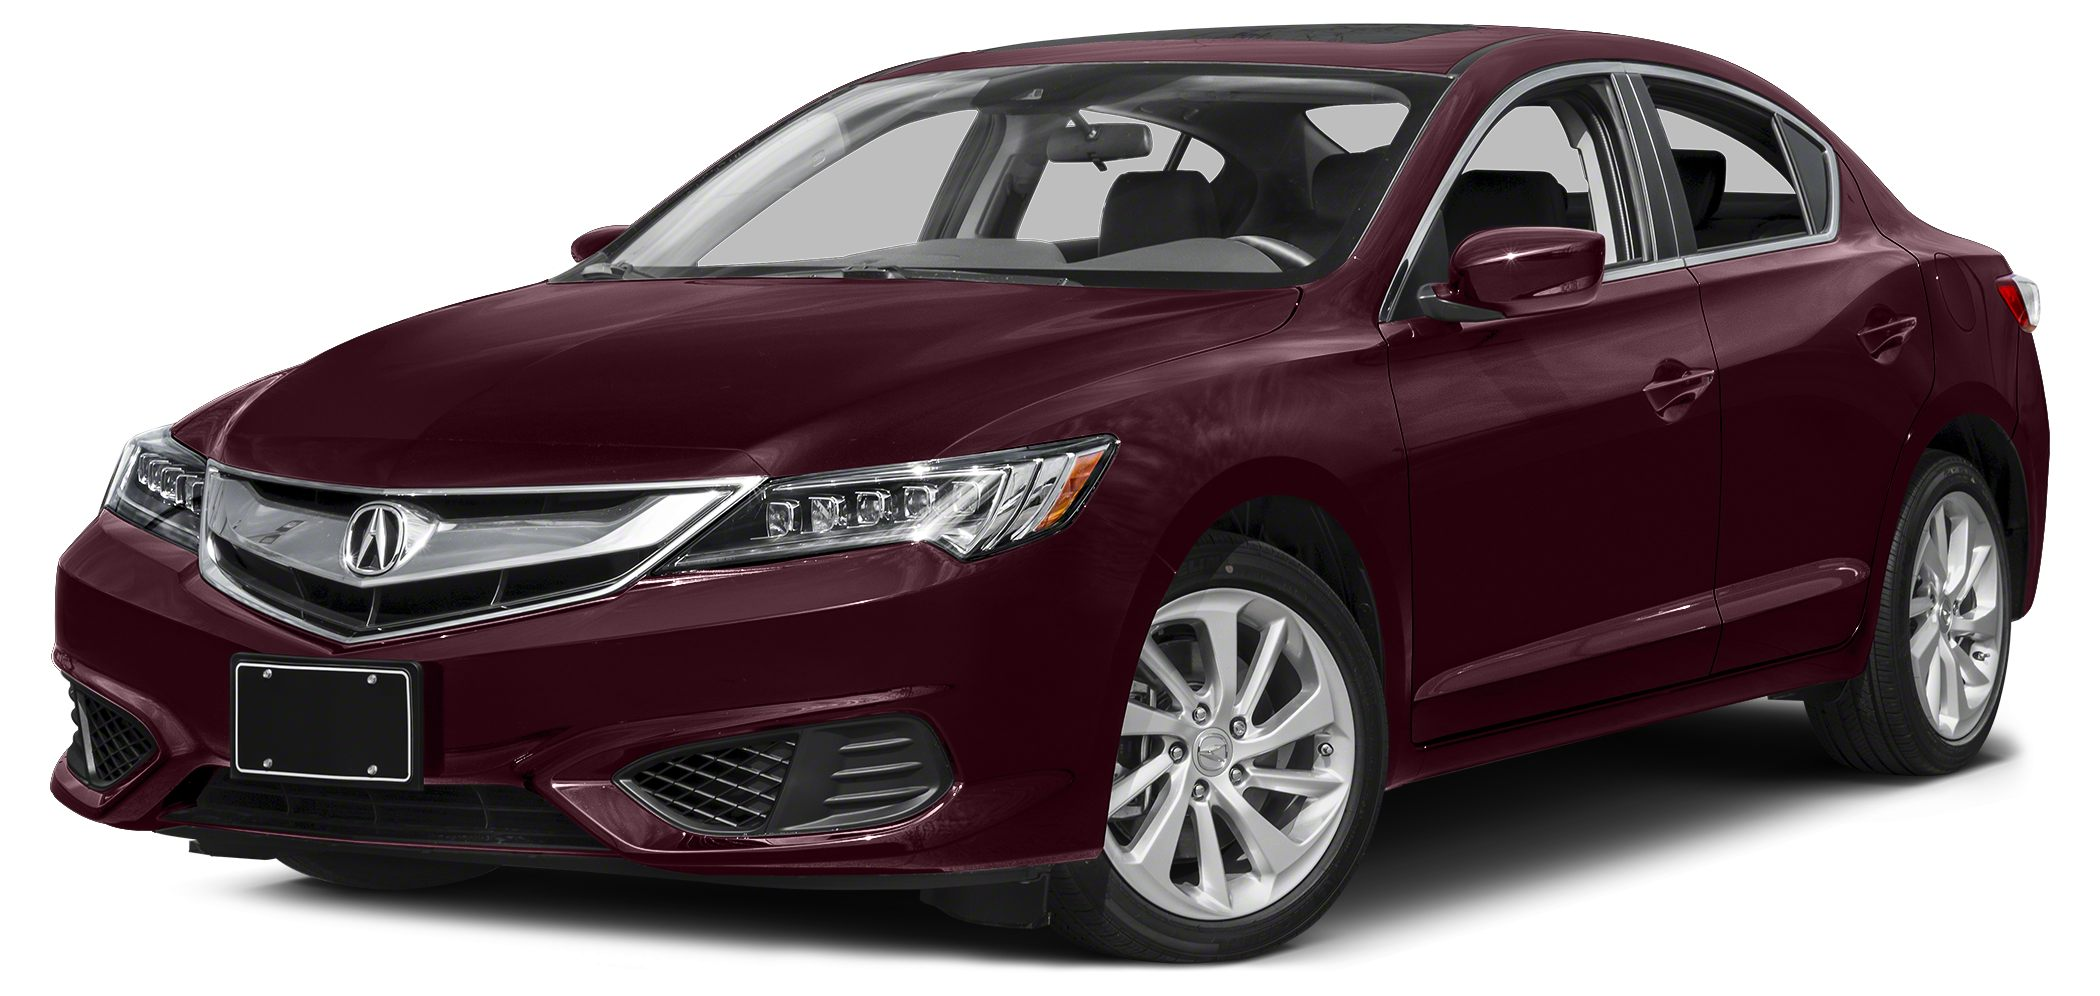 2016 Acura ILX 24 AcuraWatch Plus Miles 3Color Dark Cherry Pearl II Stock A011968 VIN 19UDE